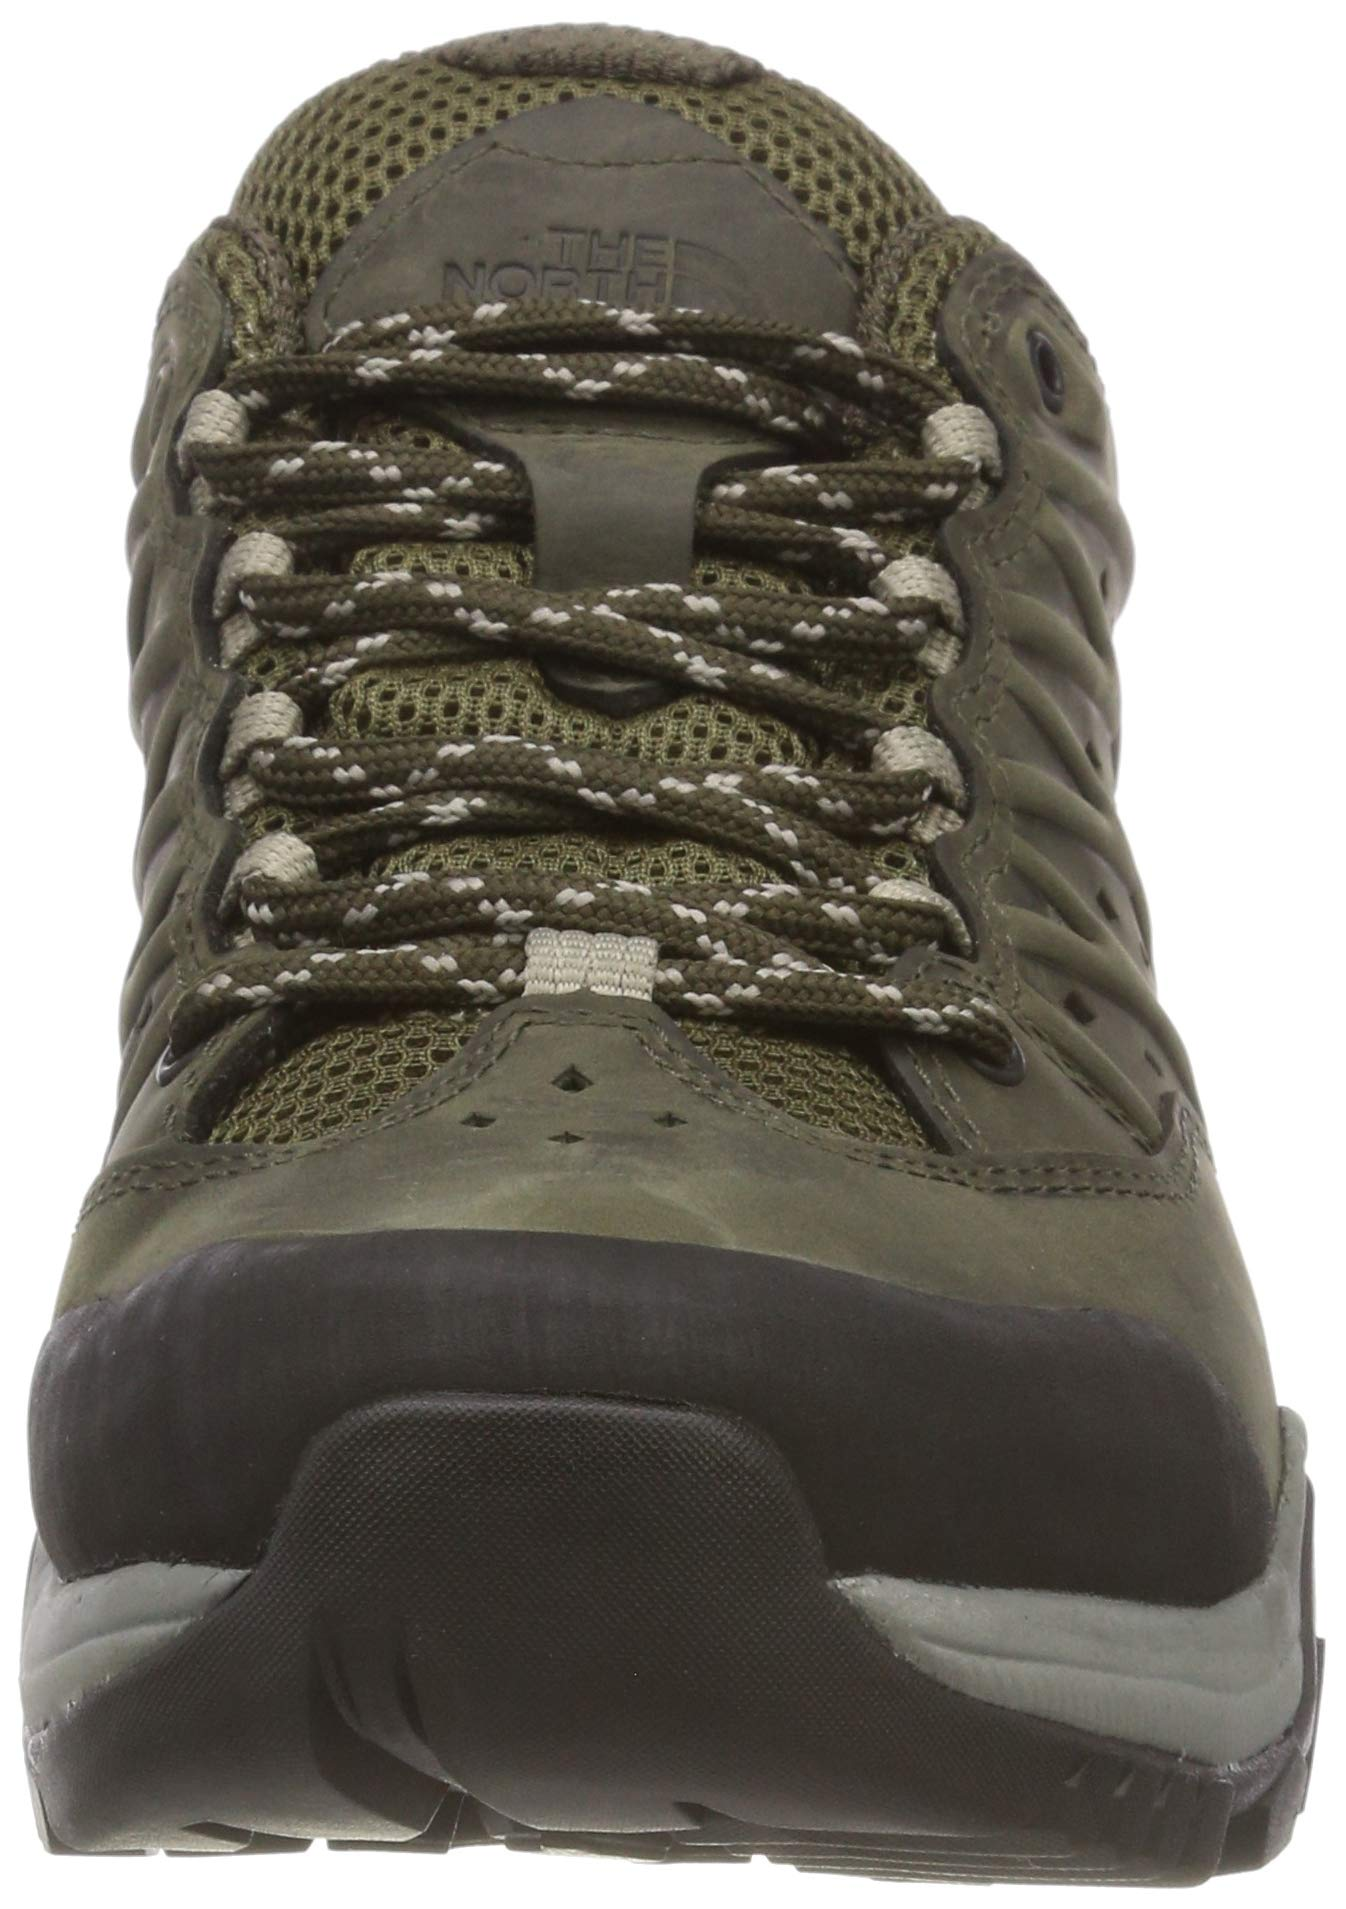 712DKSFTs6L - THE NORTH FACE Men's Hedgehog Ii GTX Low Rise Hiking Boots